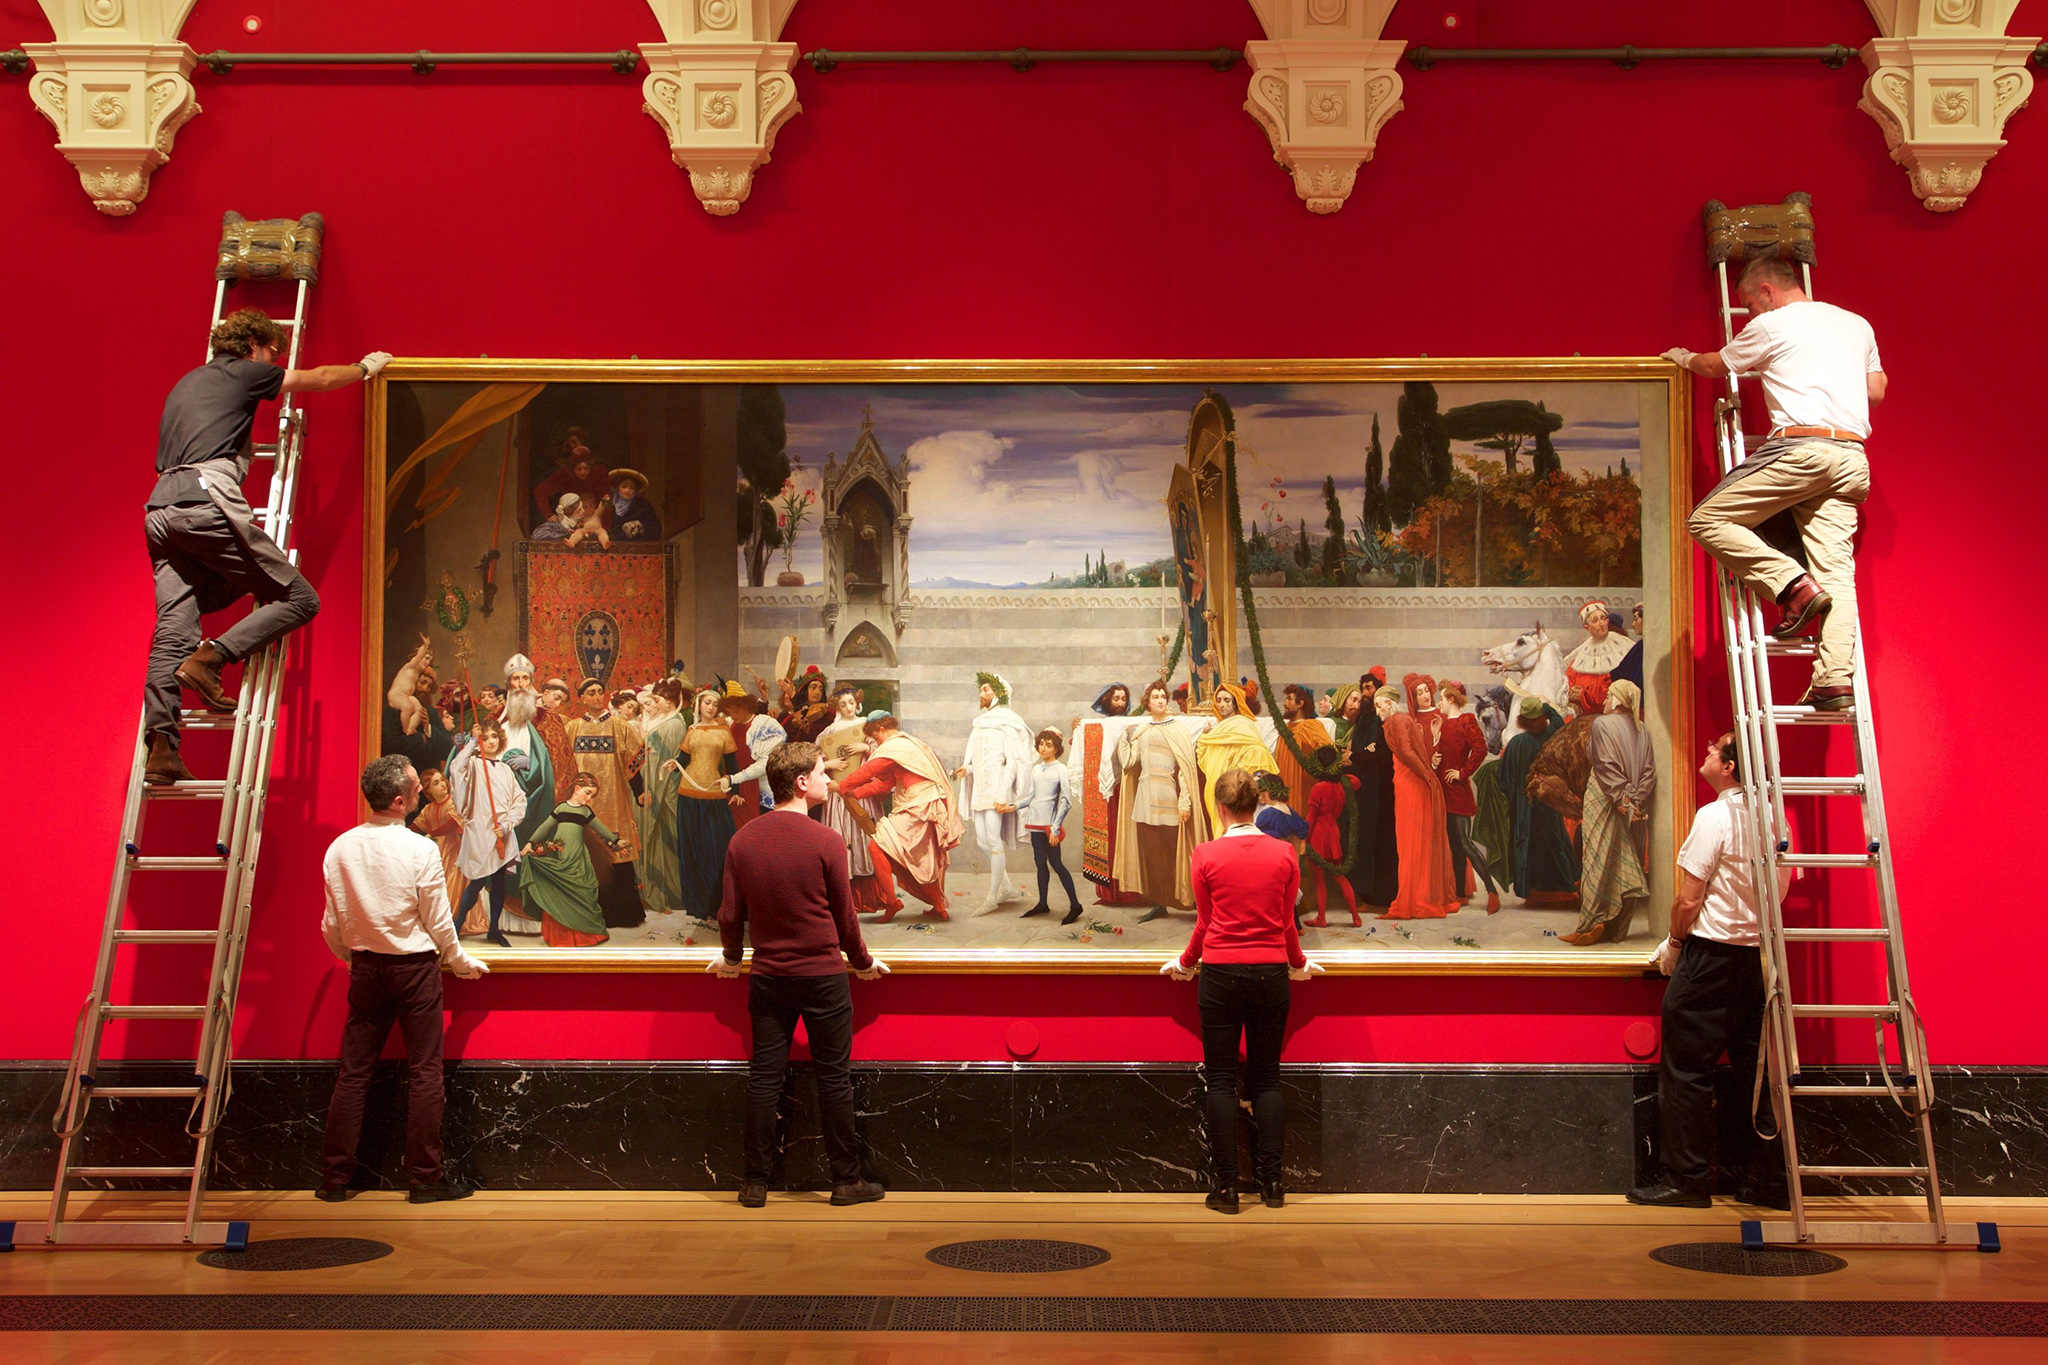 Cimabue's Madonna Carried in Procession (c.1853-5) , painted by Frederic Leighton, is installed in The Queen's Gallery at Buckingham Palace for the exhibition Portrait of the Artist, which opens on Friday, 4 November 2016. PRESS ASSOCIATION Photo. Issue date: Thursday October 20, 2016. Photo credit should read: James Robinson/Royal Collection Trust/Her Majesty Queen Elizabeth II 2016/PA Wire  NOTE TO EDITORS: This handout photo may only be used in for editorial reporting purposes for the contemporaneous illustration of events, things or the people in the image or facts mentioned in the caption. Reuse of the picture may require further permission from the copyright holder.